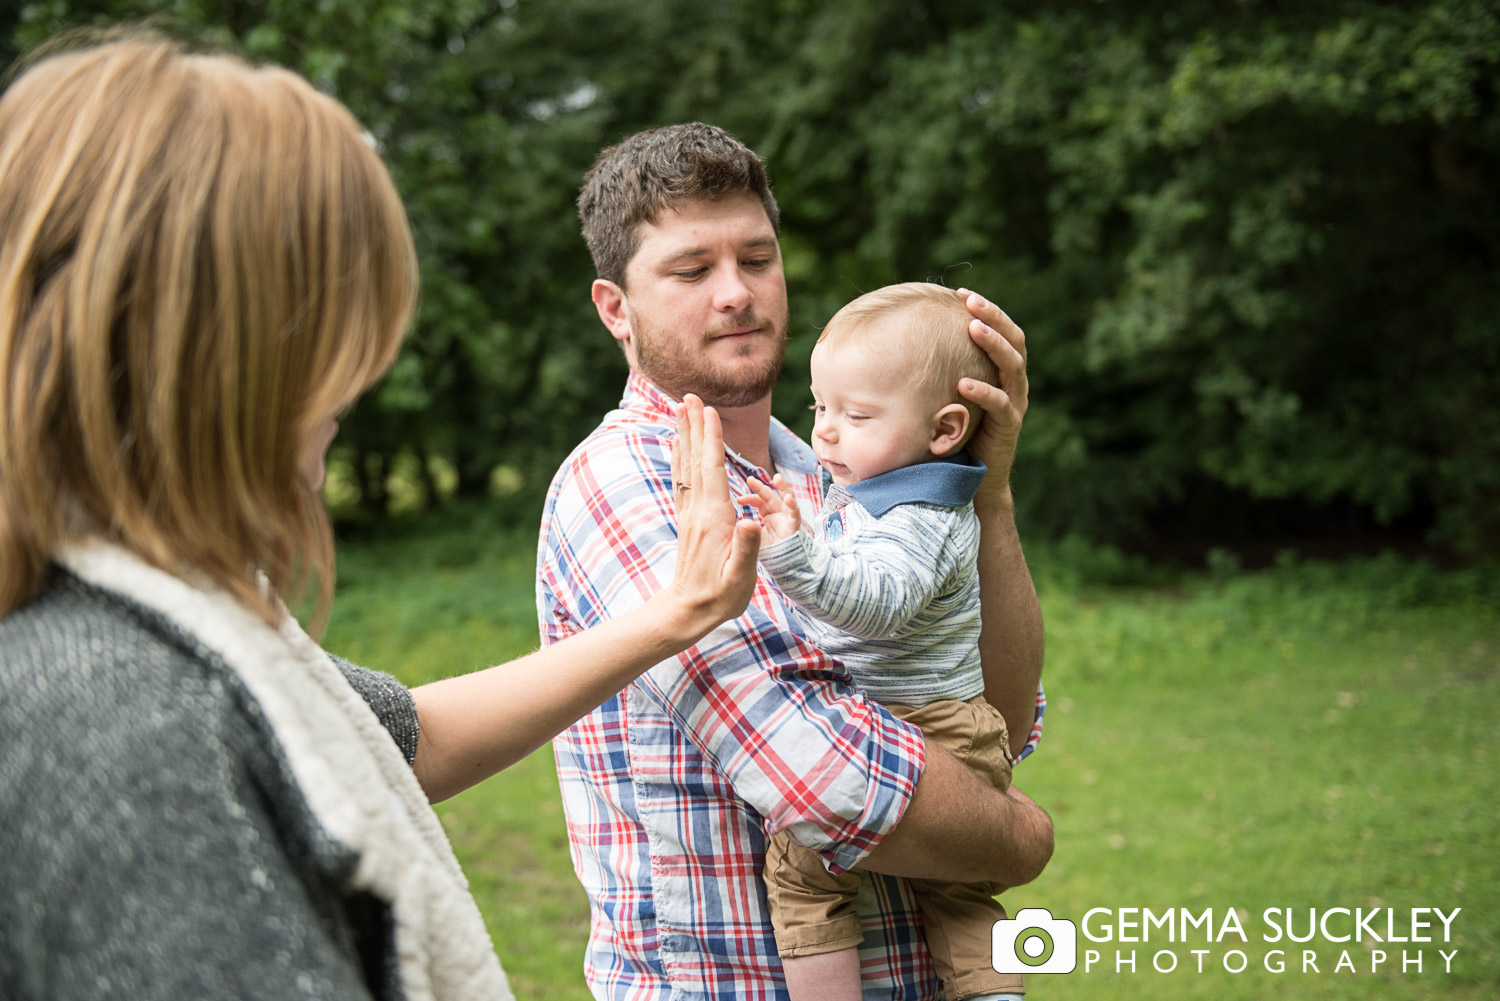 baby high five-ing during engagement shoot